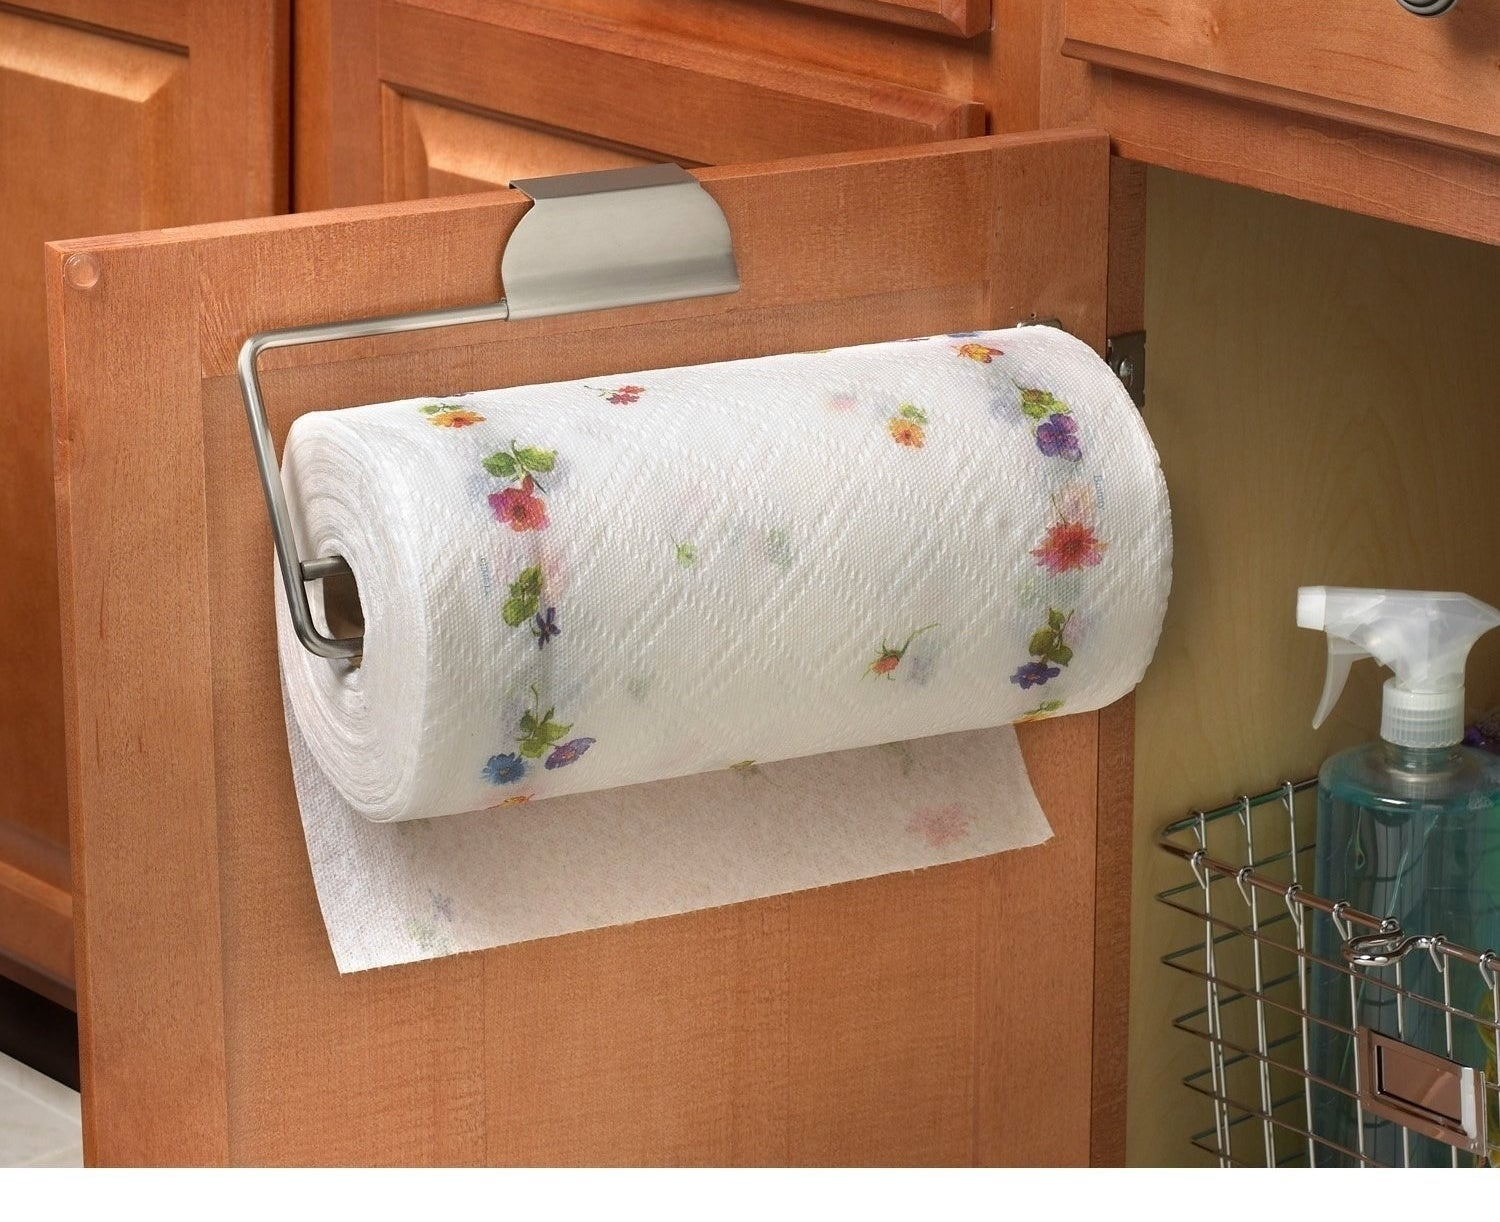 An over-the-door paper towel holder to free up some much-needed counter space.